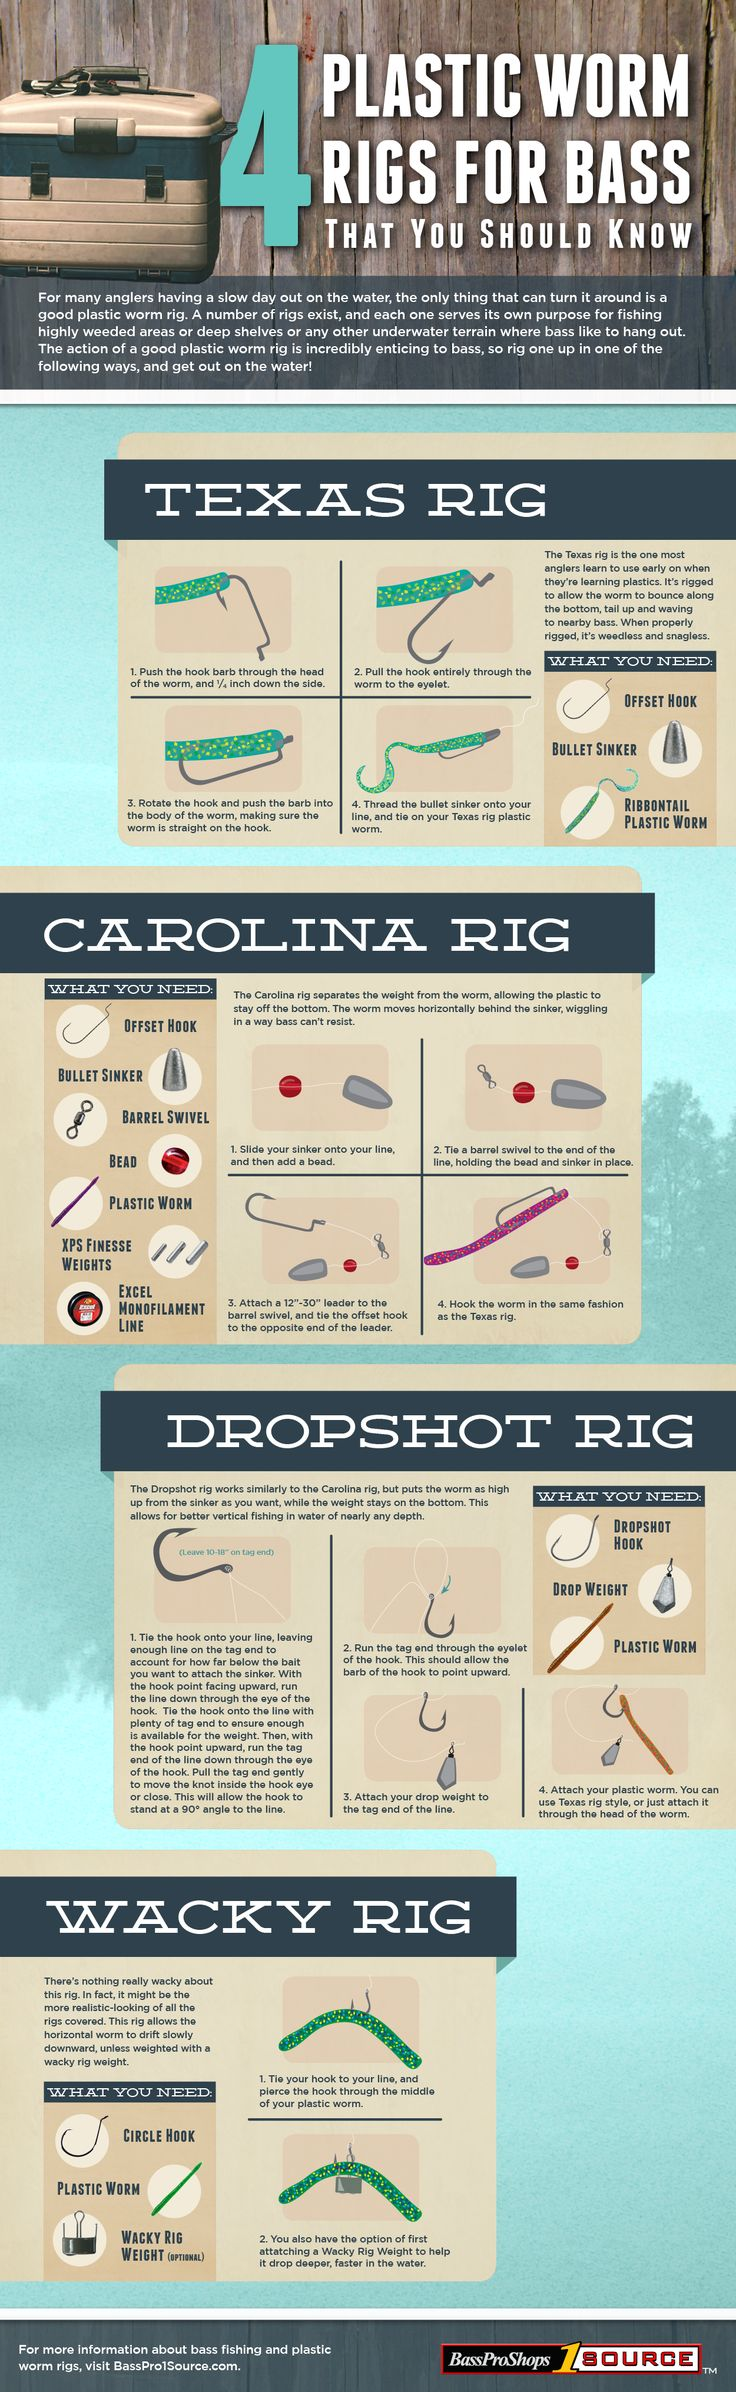 How to Fishing Rigs: Texas Rig, Carolina Rig, Dropshot Rig & Wacky Rig